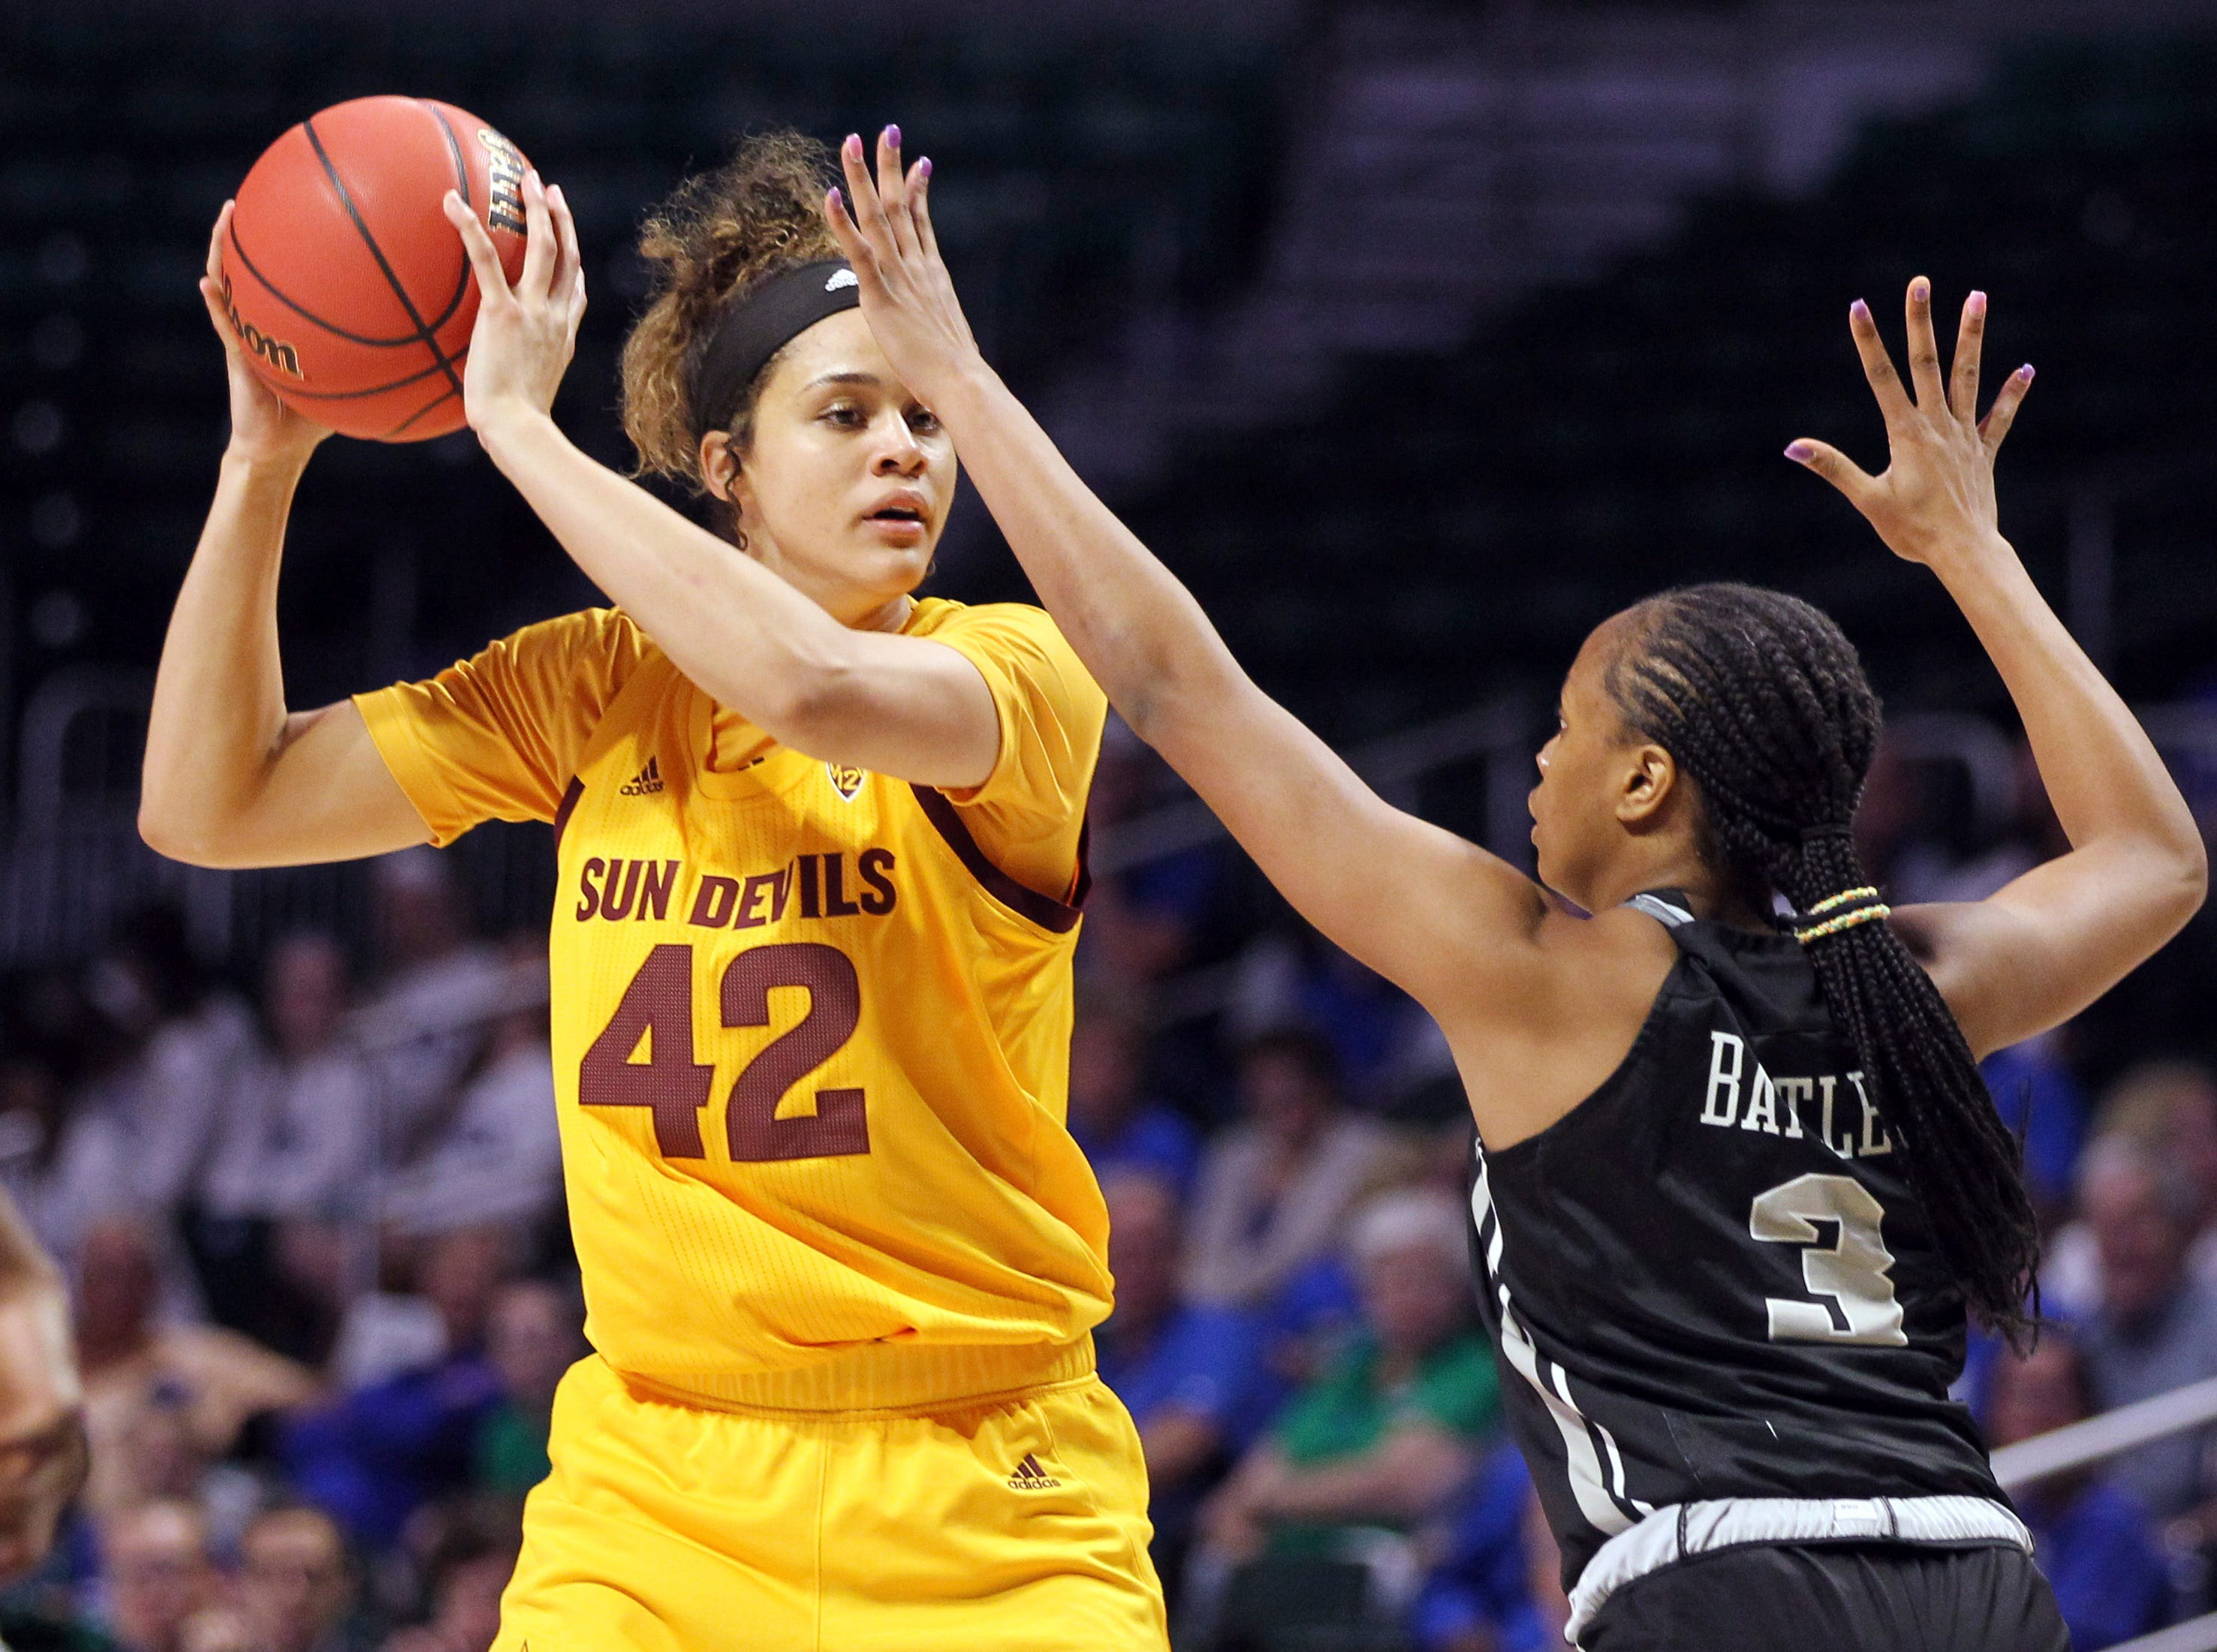 Arizona State forward Kianna Ibis (42) looks to pass asUCF guard Diamond Battles (3) defends, during a first round women's college basketball game in the NCAA Tournament in Friday, March 22, 2019, in Coral Gables, Fla. (AP Photo/Luis M. Alvarez)